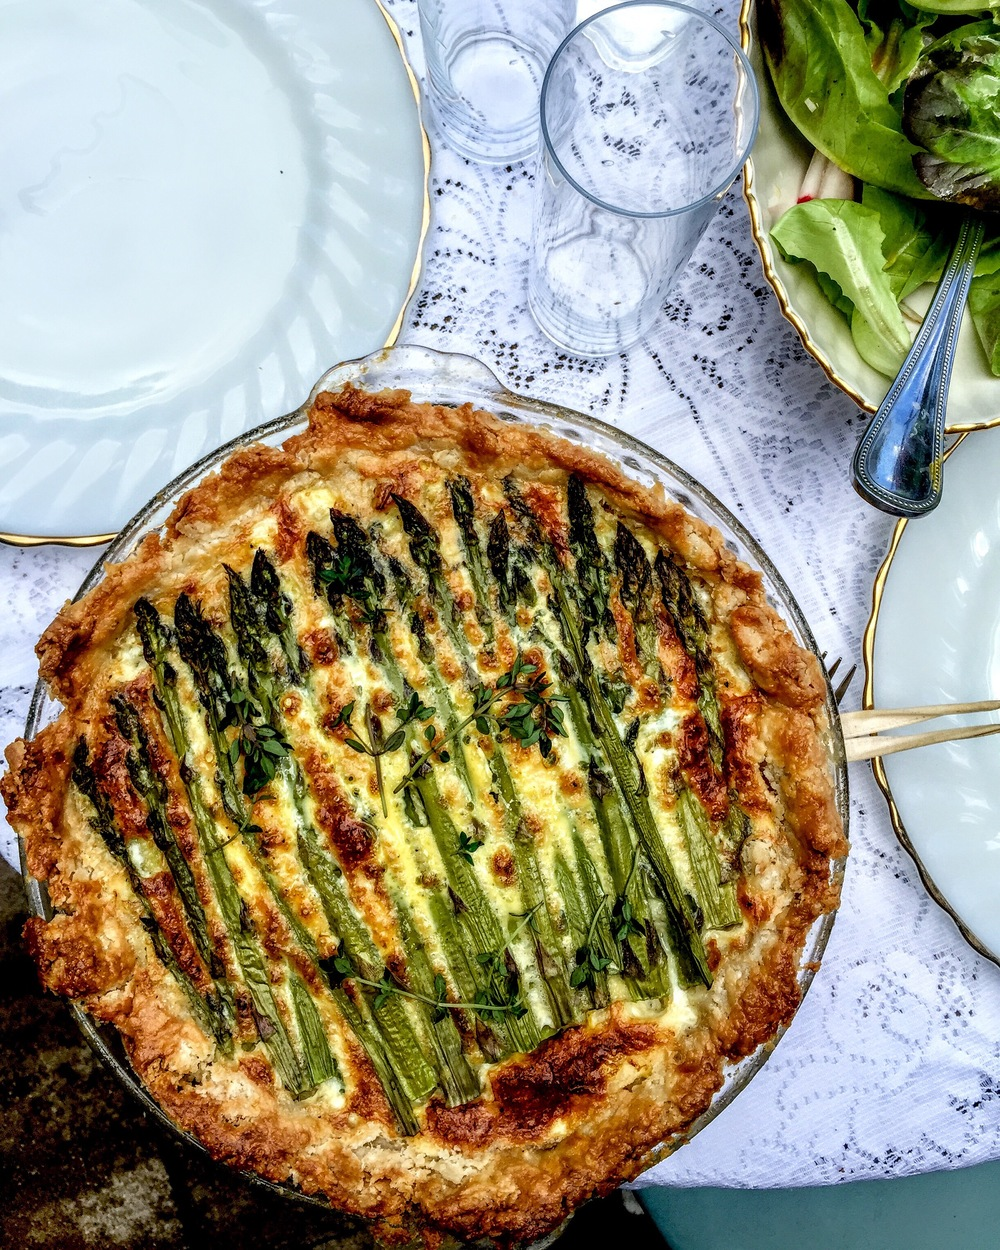 Leek Gruyere and Asparagus Quiche, a staple for Mother's Day brunch